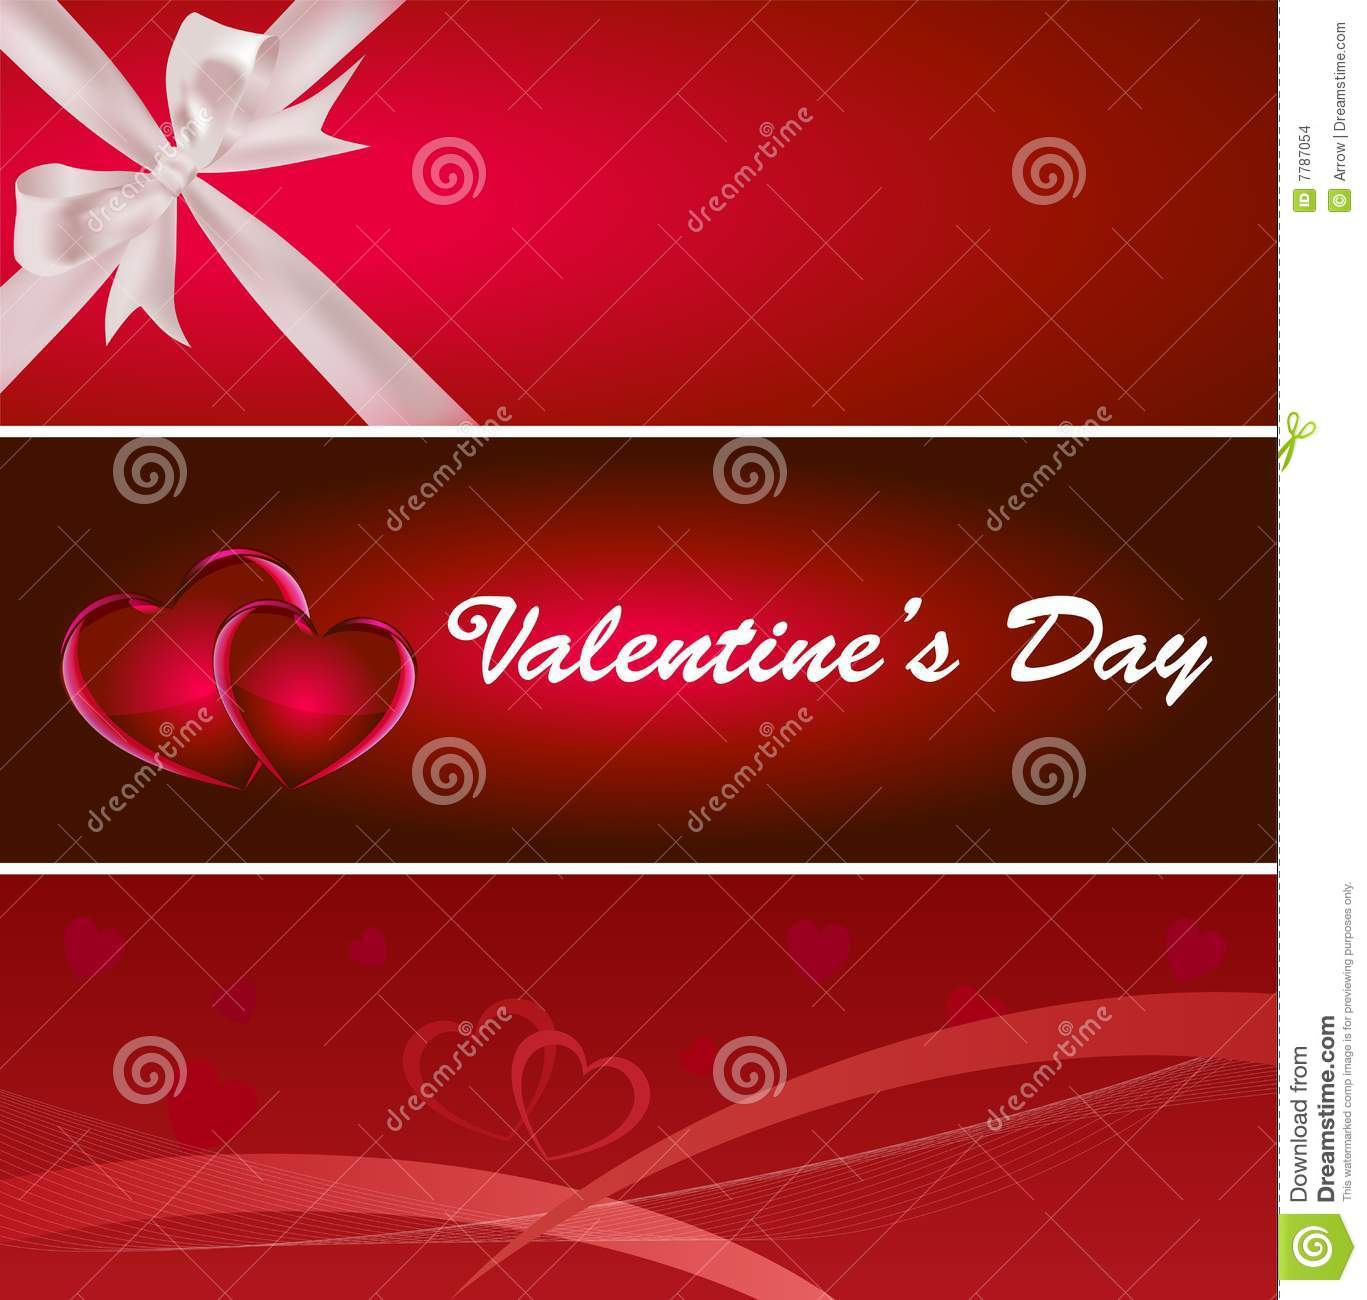 Valentine's Day Banner Stock Images - Image: 7787054